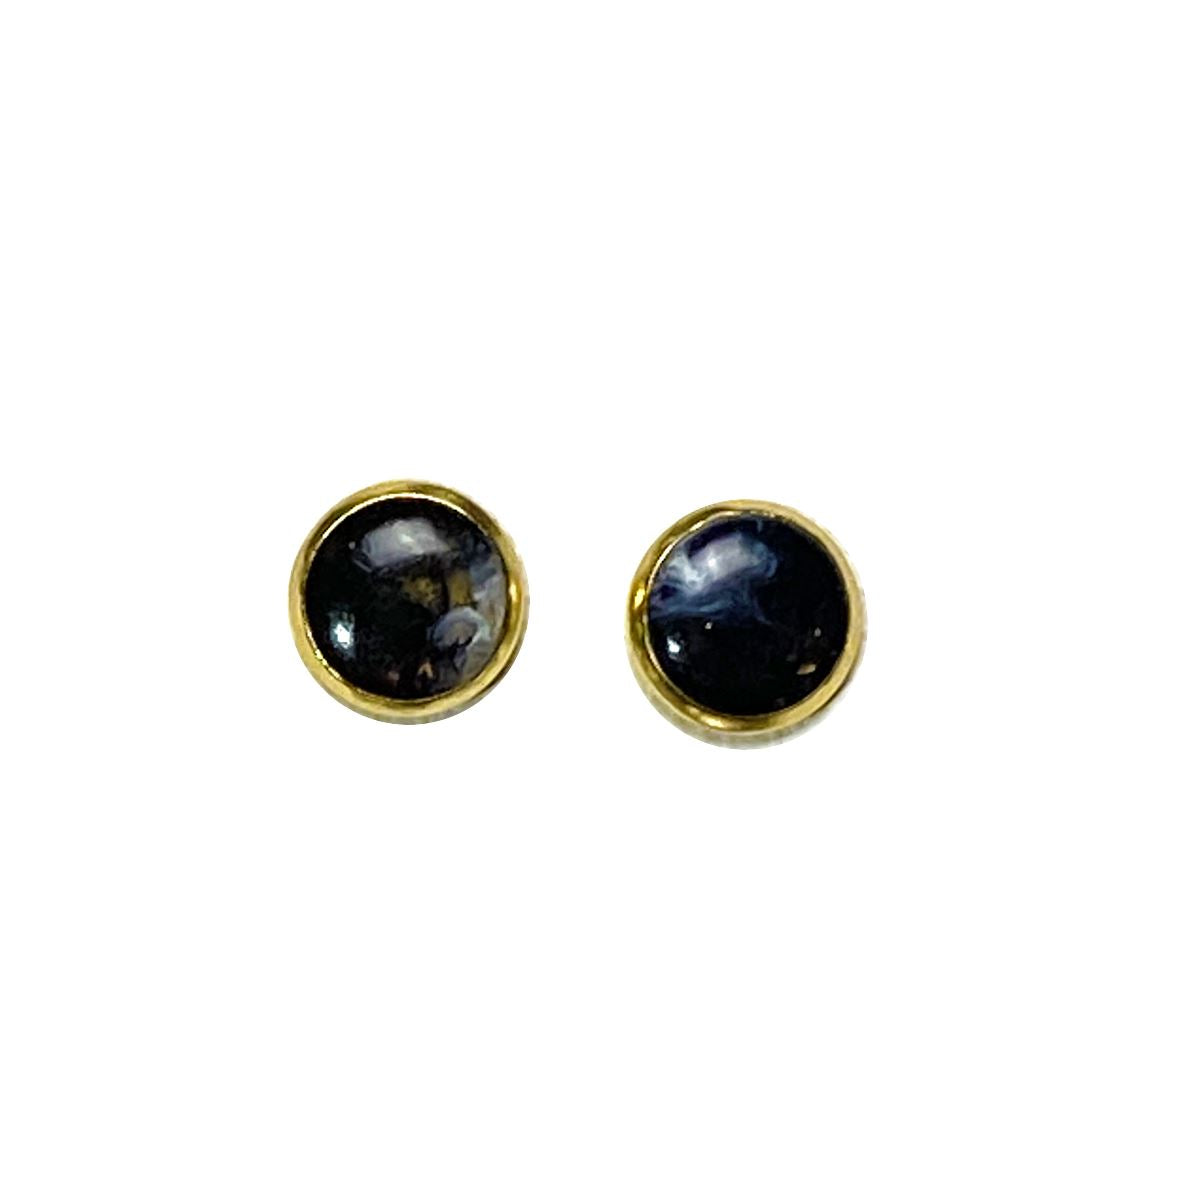 Celestial - mostly black gold 8mm stud earrings Deanna Dot Store